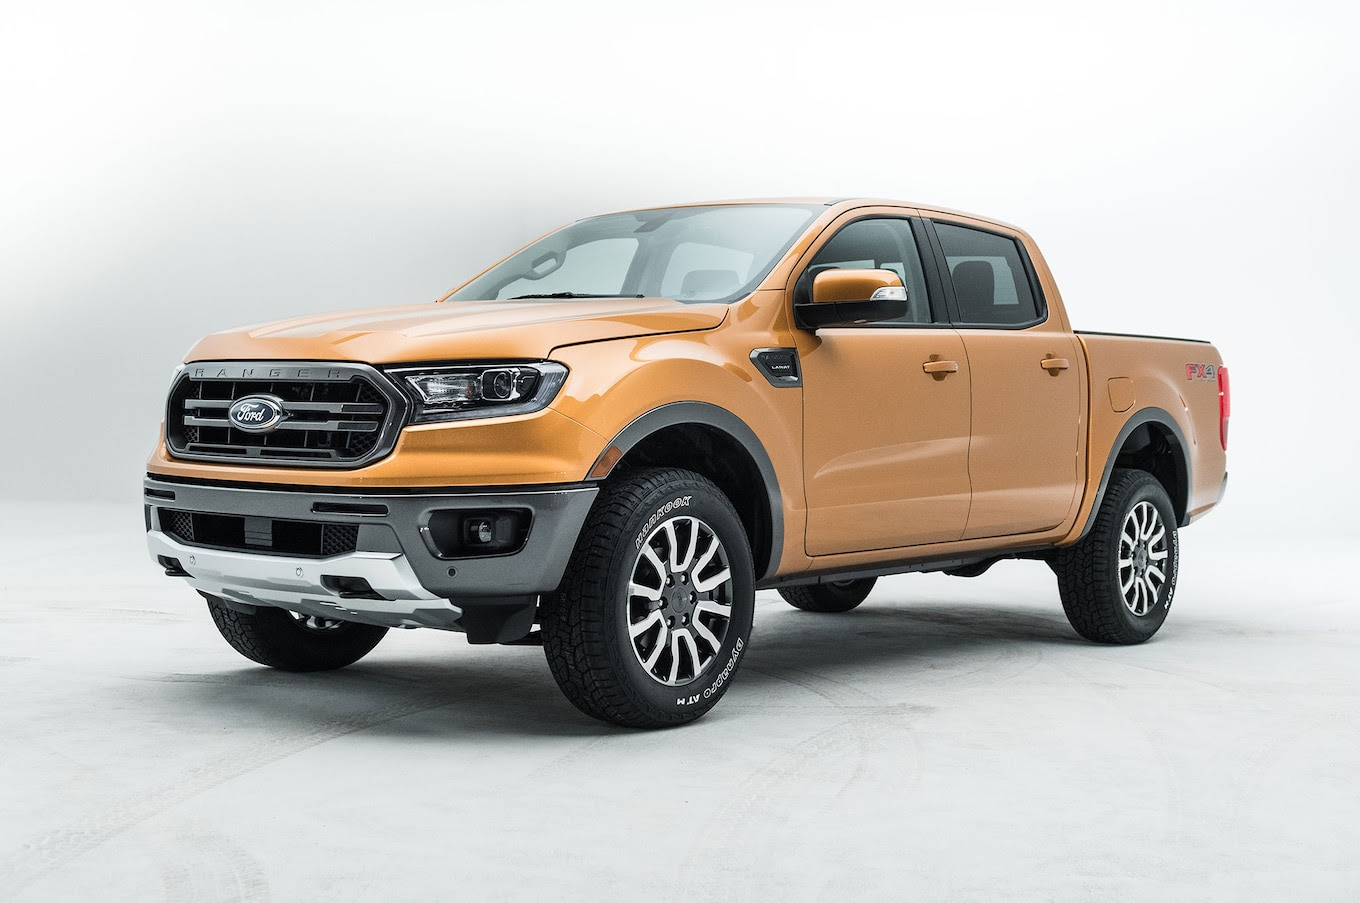 2019 Ford Ranger First Look: Welcome Home - Motor Trend